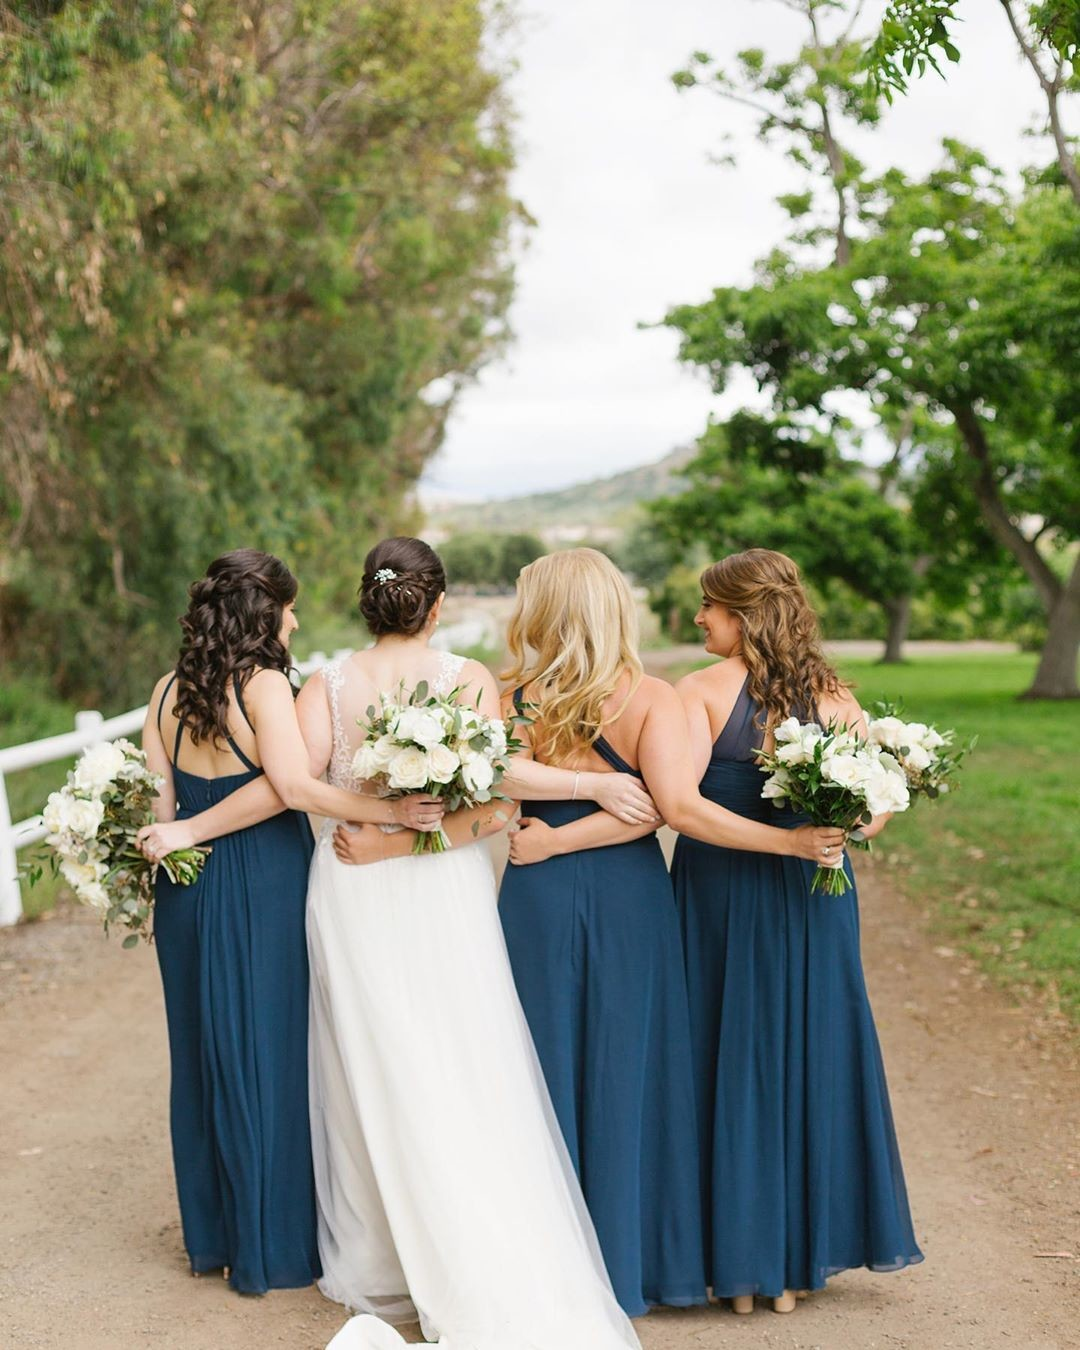 Shout out to this fabulous bride tribe! ❤️ Megan chose to have a close-knit bridal party with her sister and sisters-in-law by